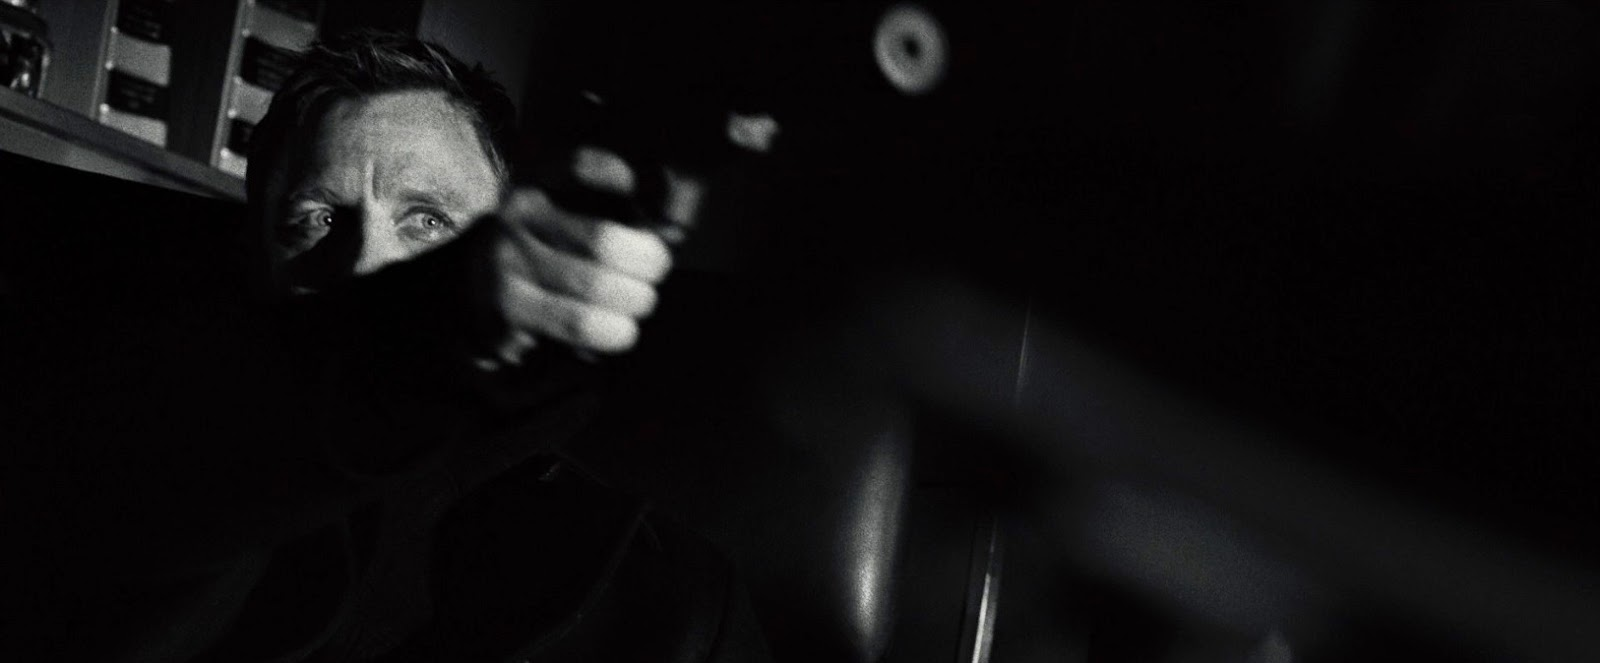 is casino royale in black and white